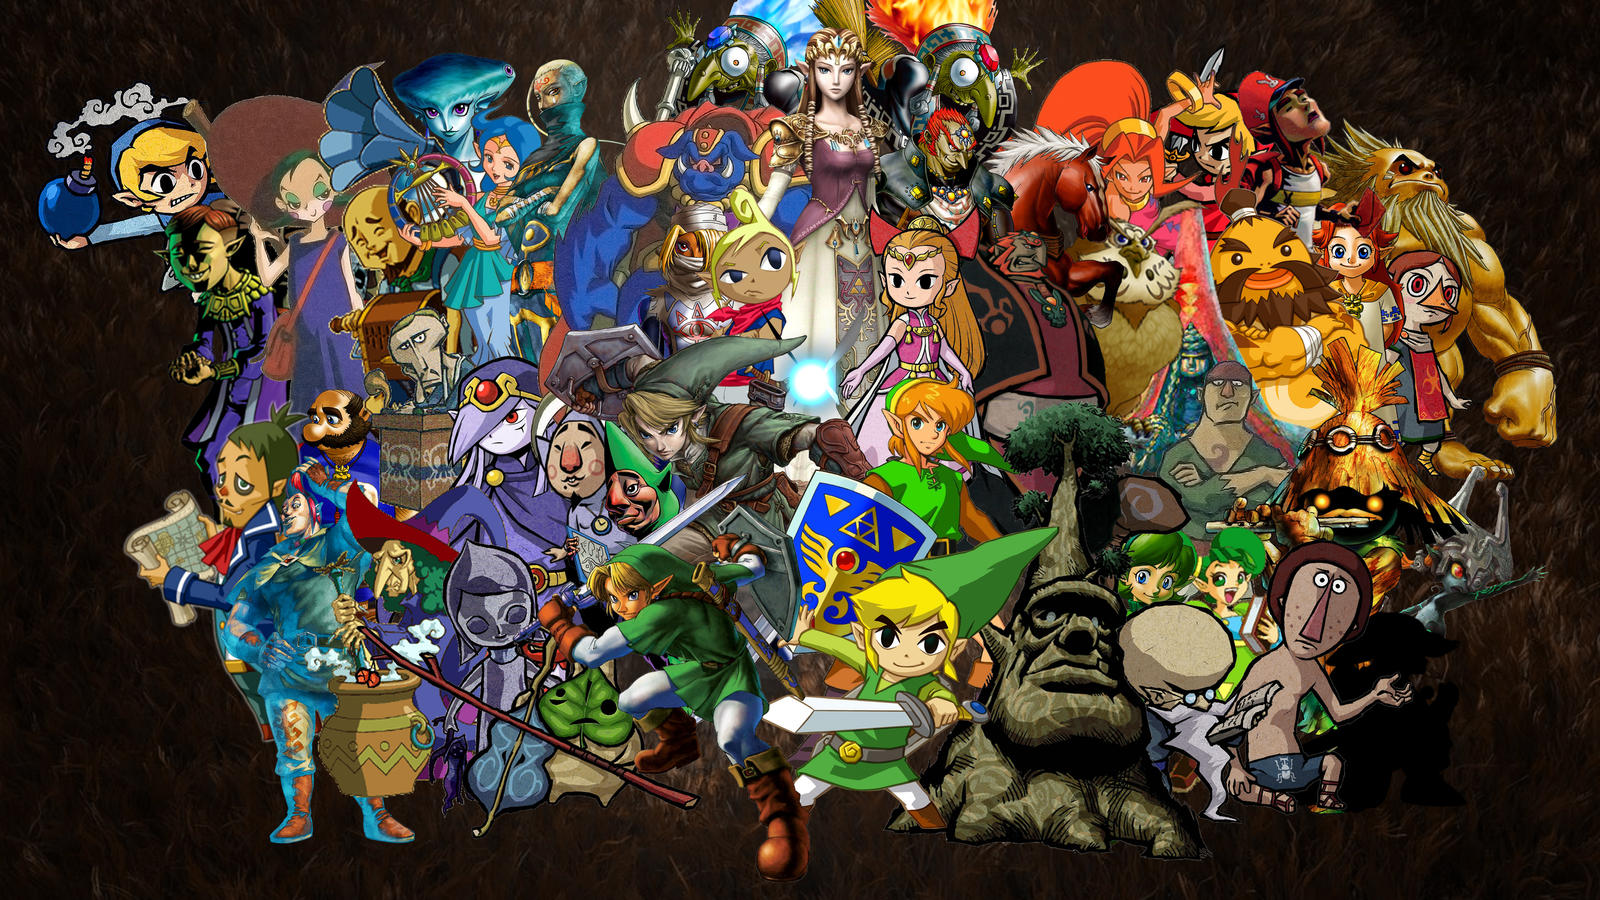 Zelda Collage Wallpaper  Widescreen  by LockstinAll Zelda Characters